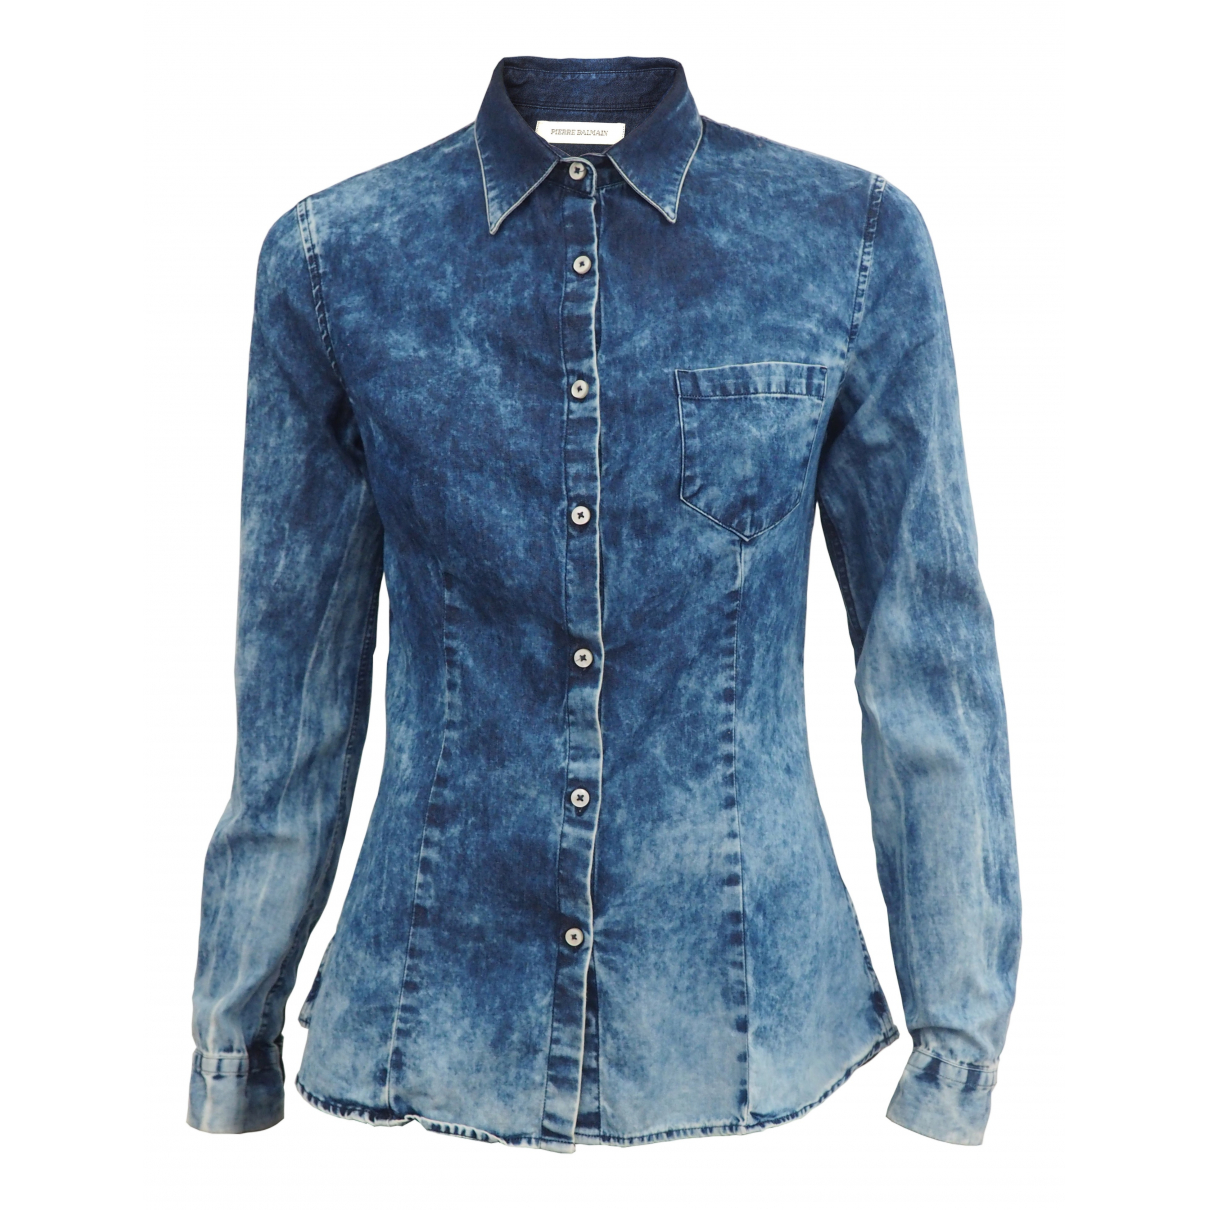 Pierre Balmain \N Blue Cotton  top for Women S International